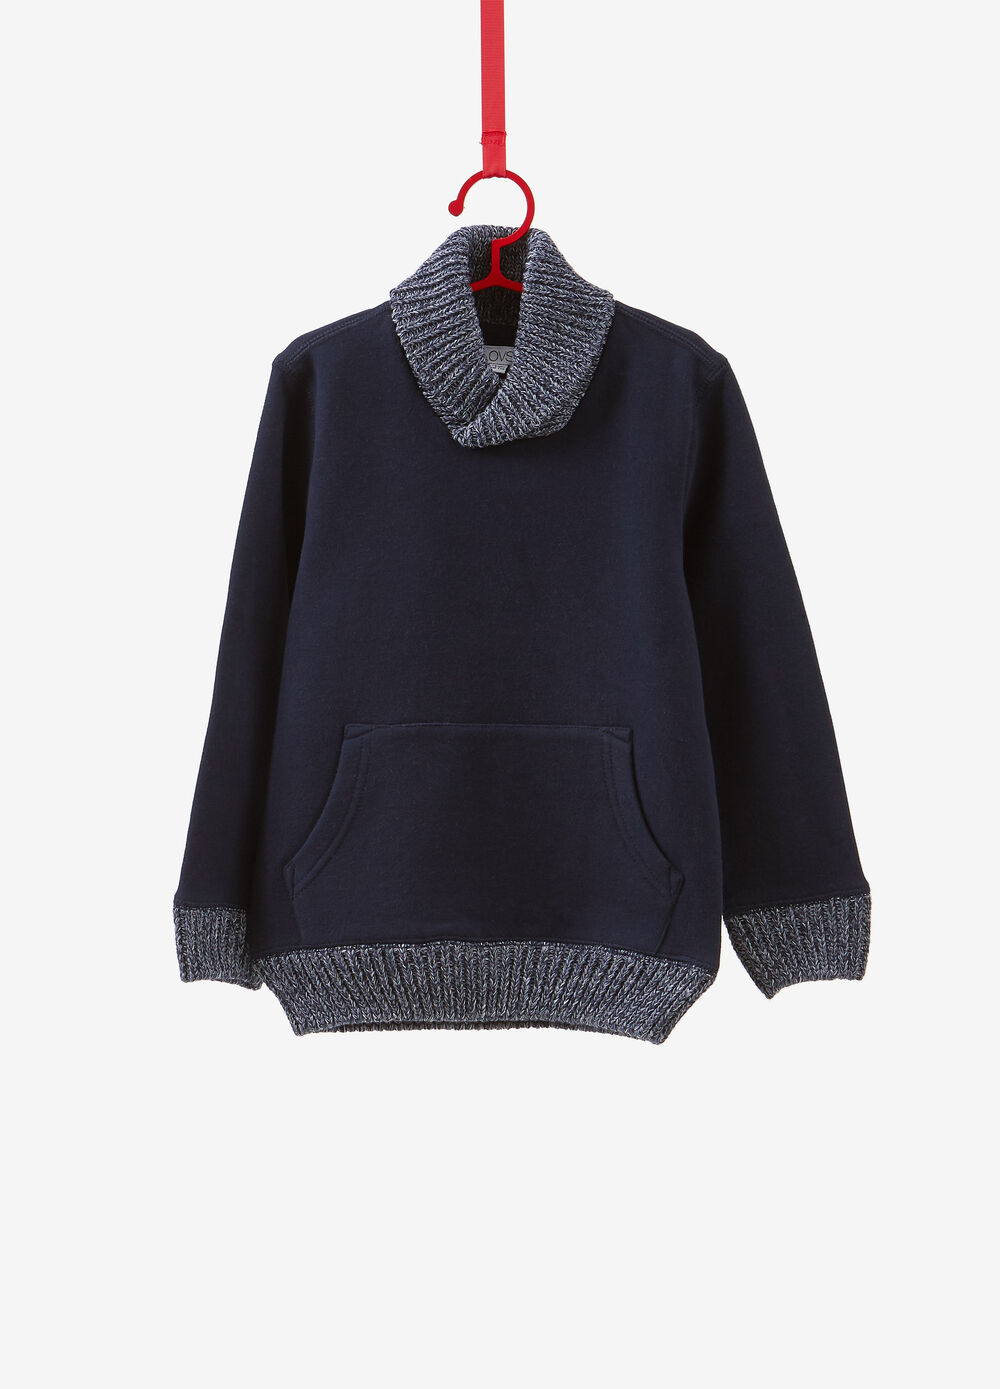 Sweatshirt in 100% cotton with knitted ribbing